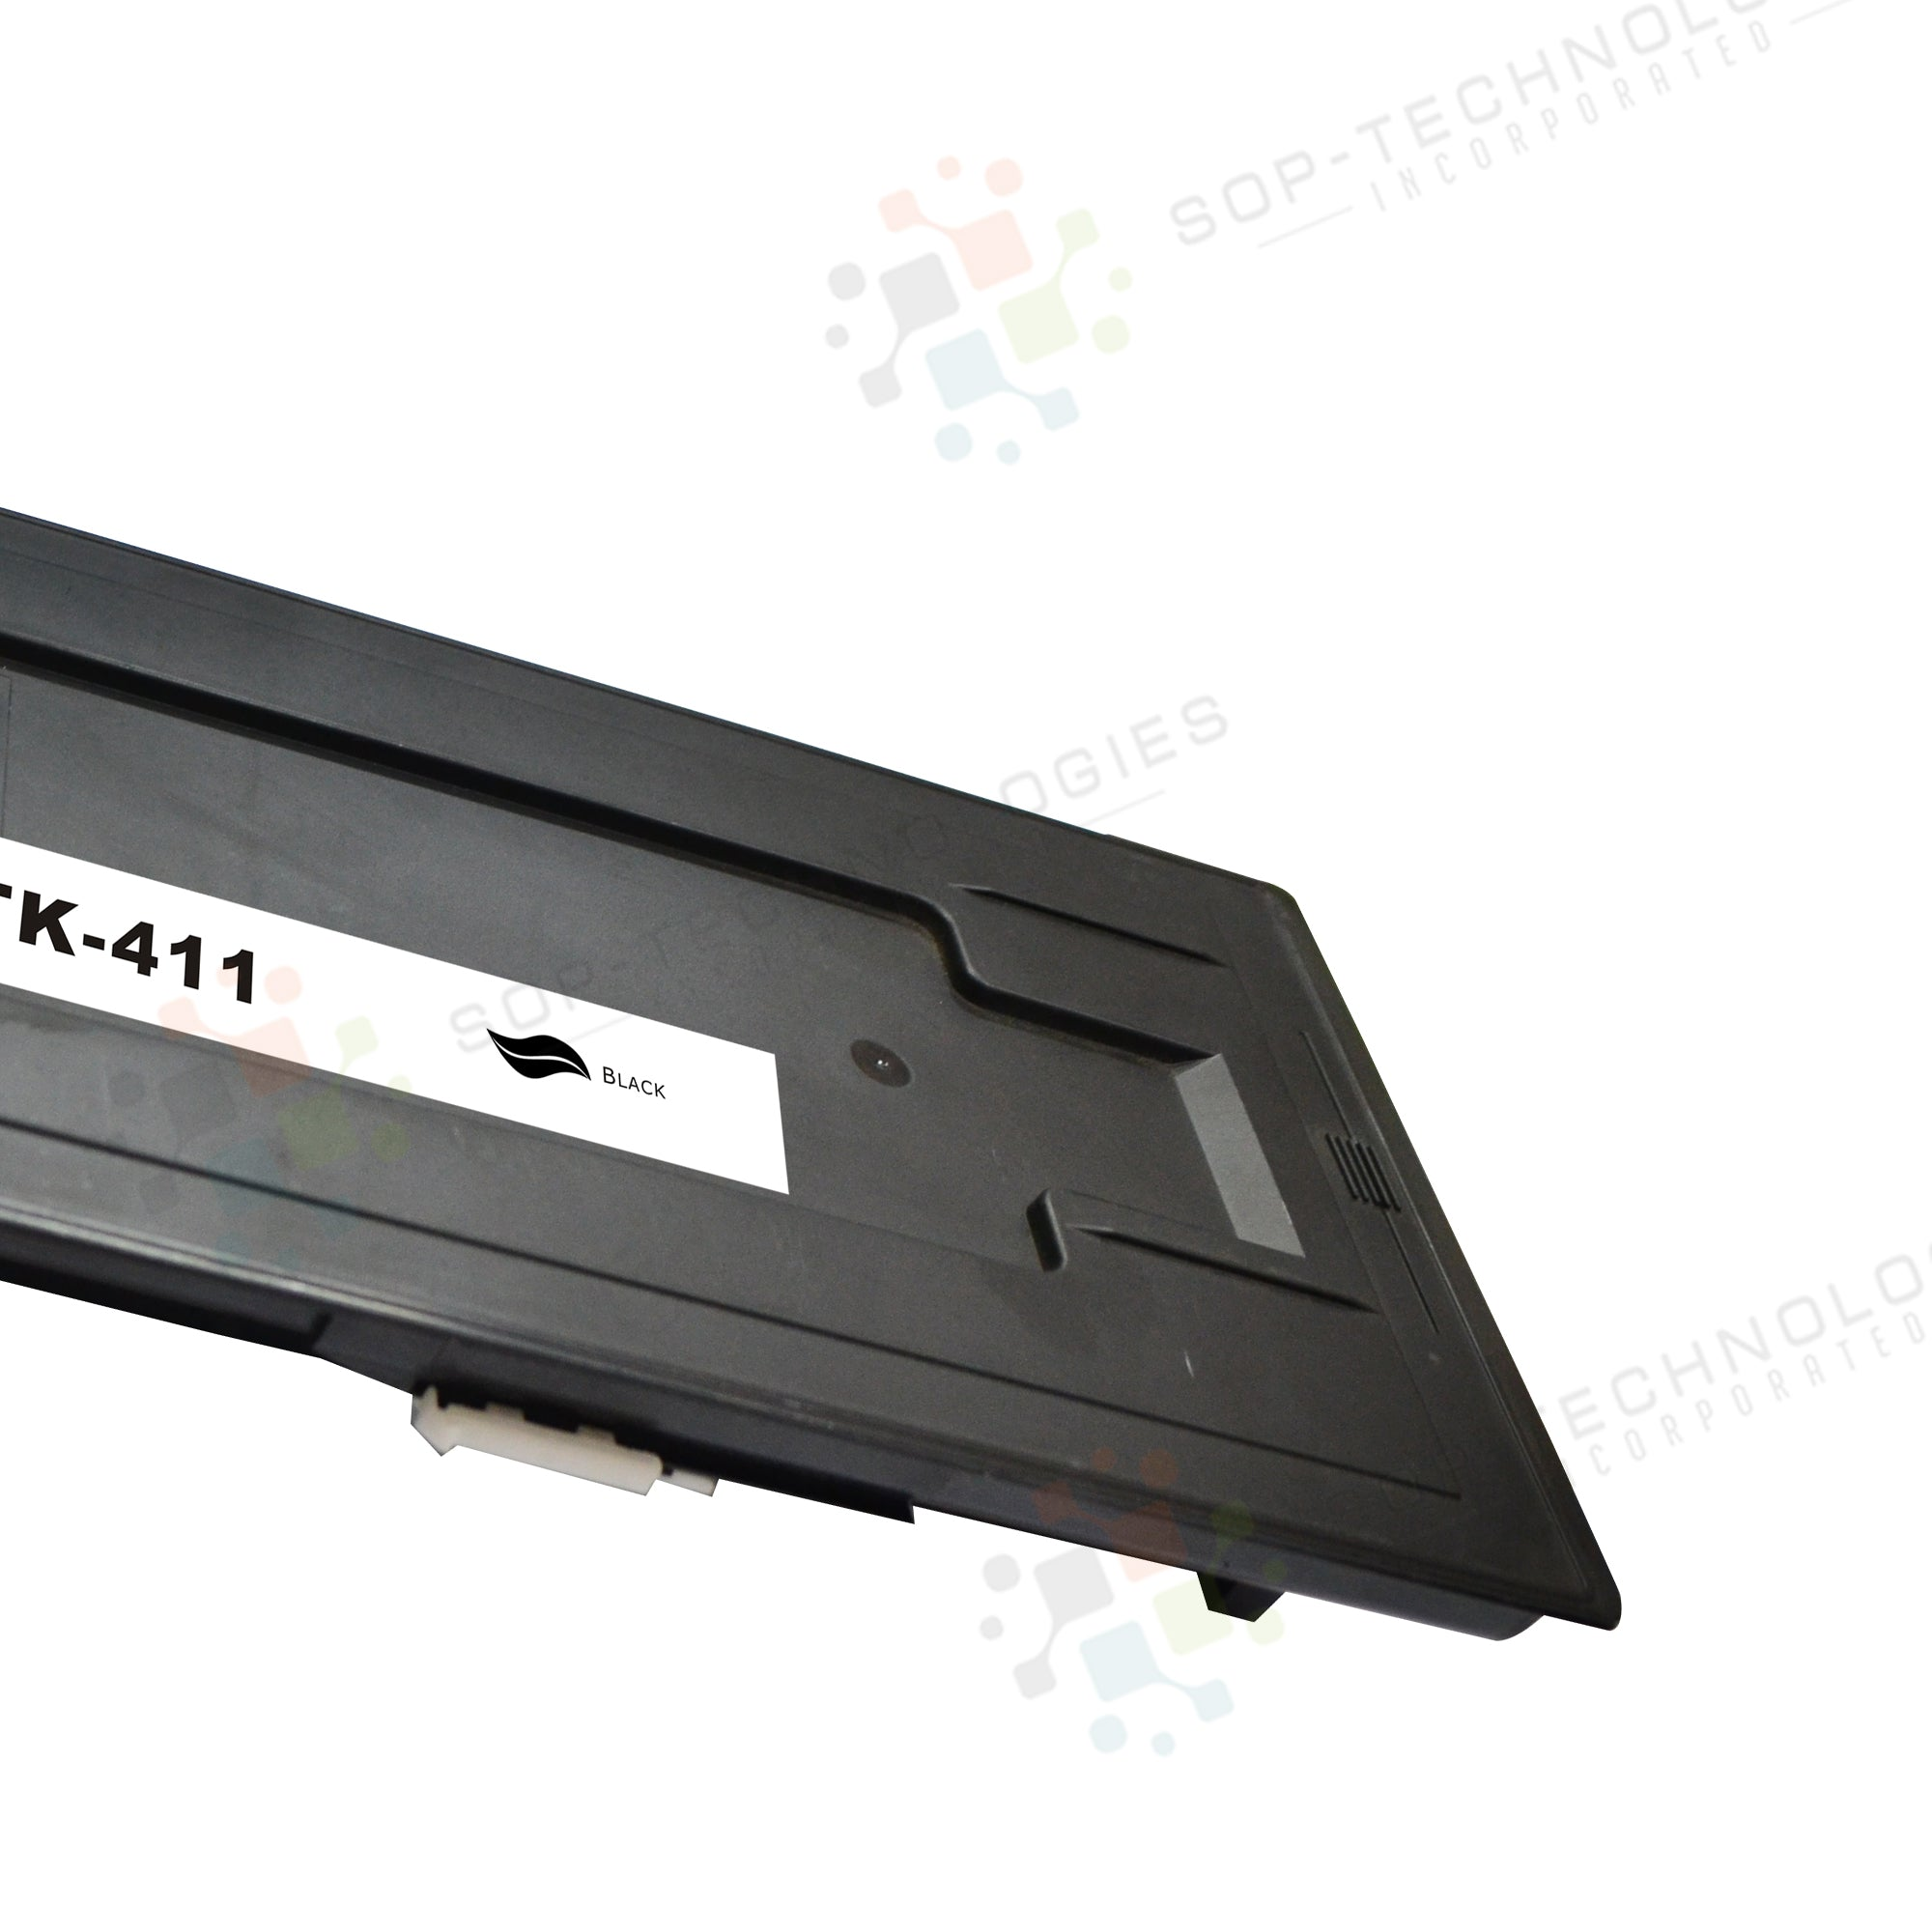 Pack Toner Cartridge for Kyocera KM-1620 - SOP-TECHNOLOGIES, INC.